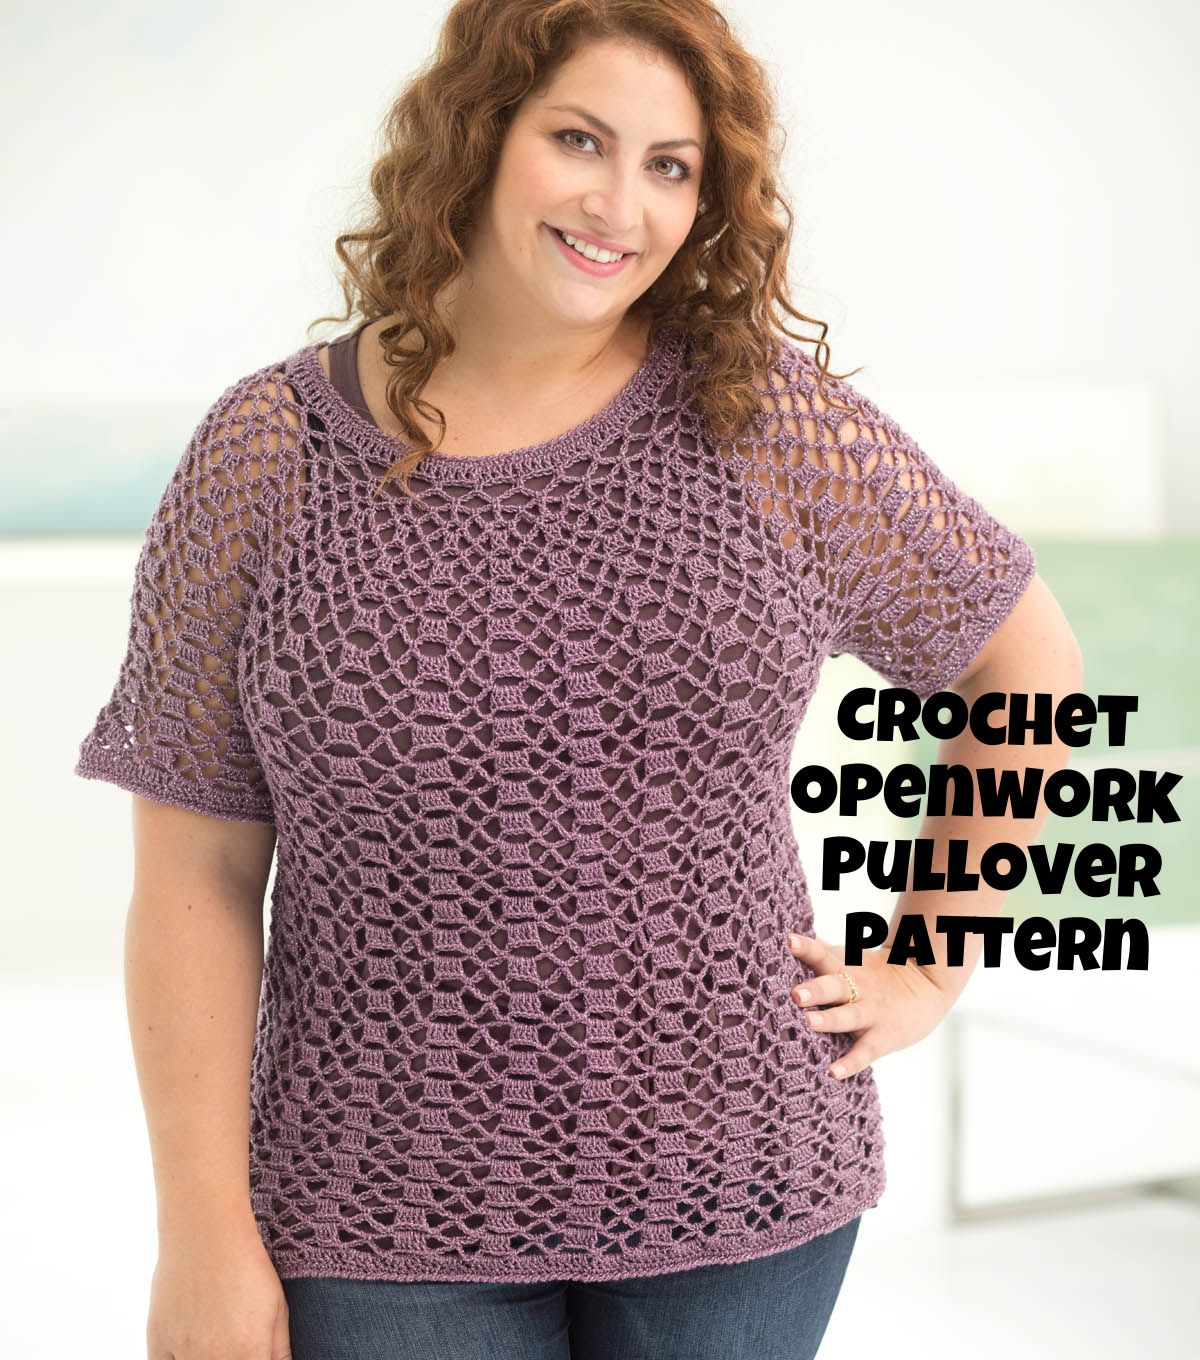 How To Make An Openwork Top Down Pullover Crochet Pattern | Free ...